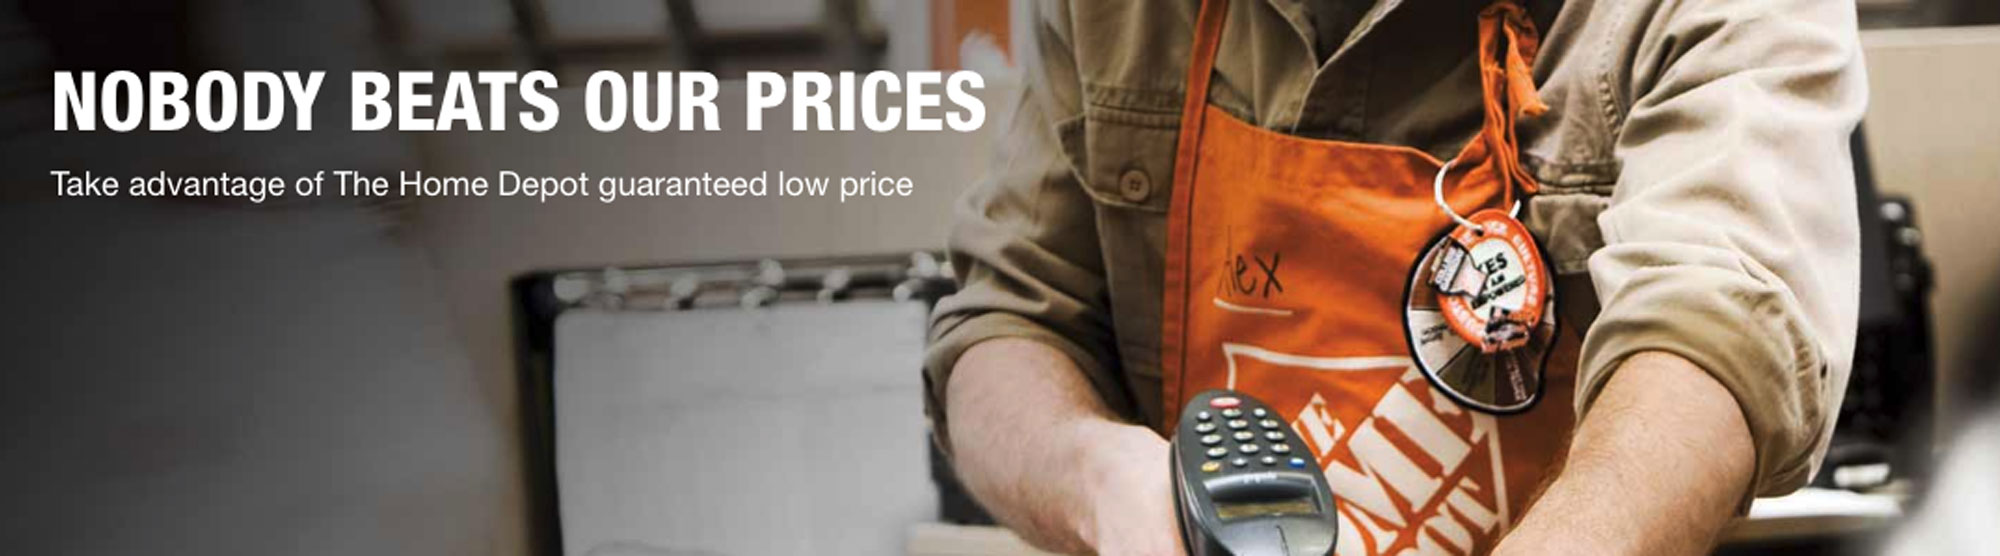 Home Depot Black Friday 2018 Price Match